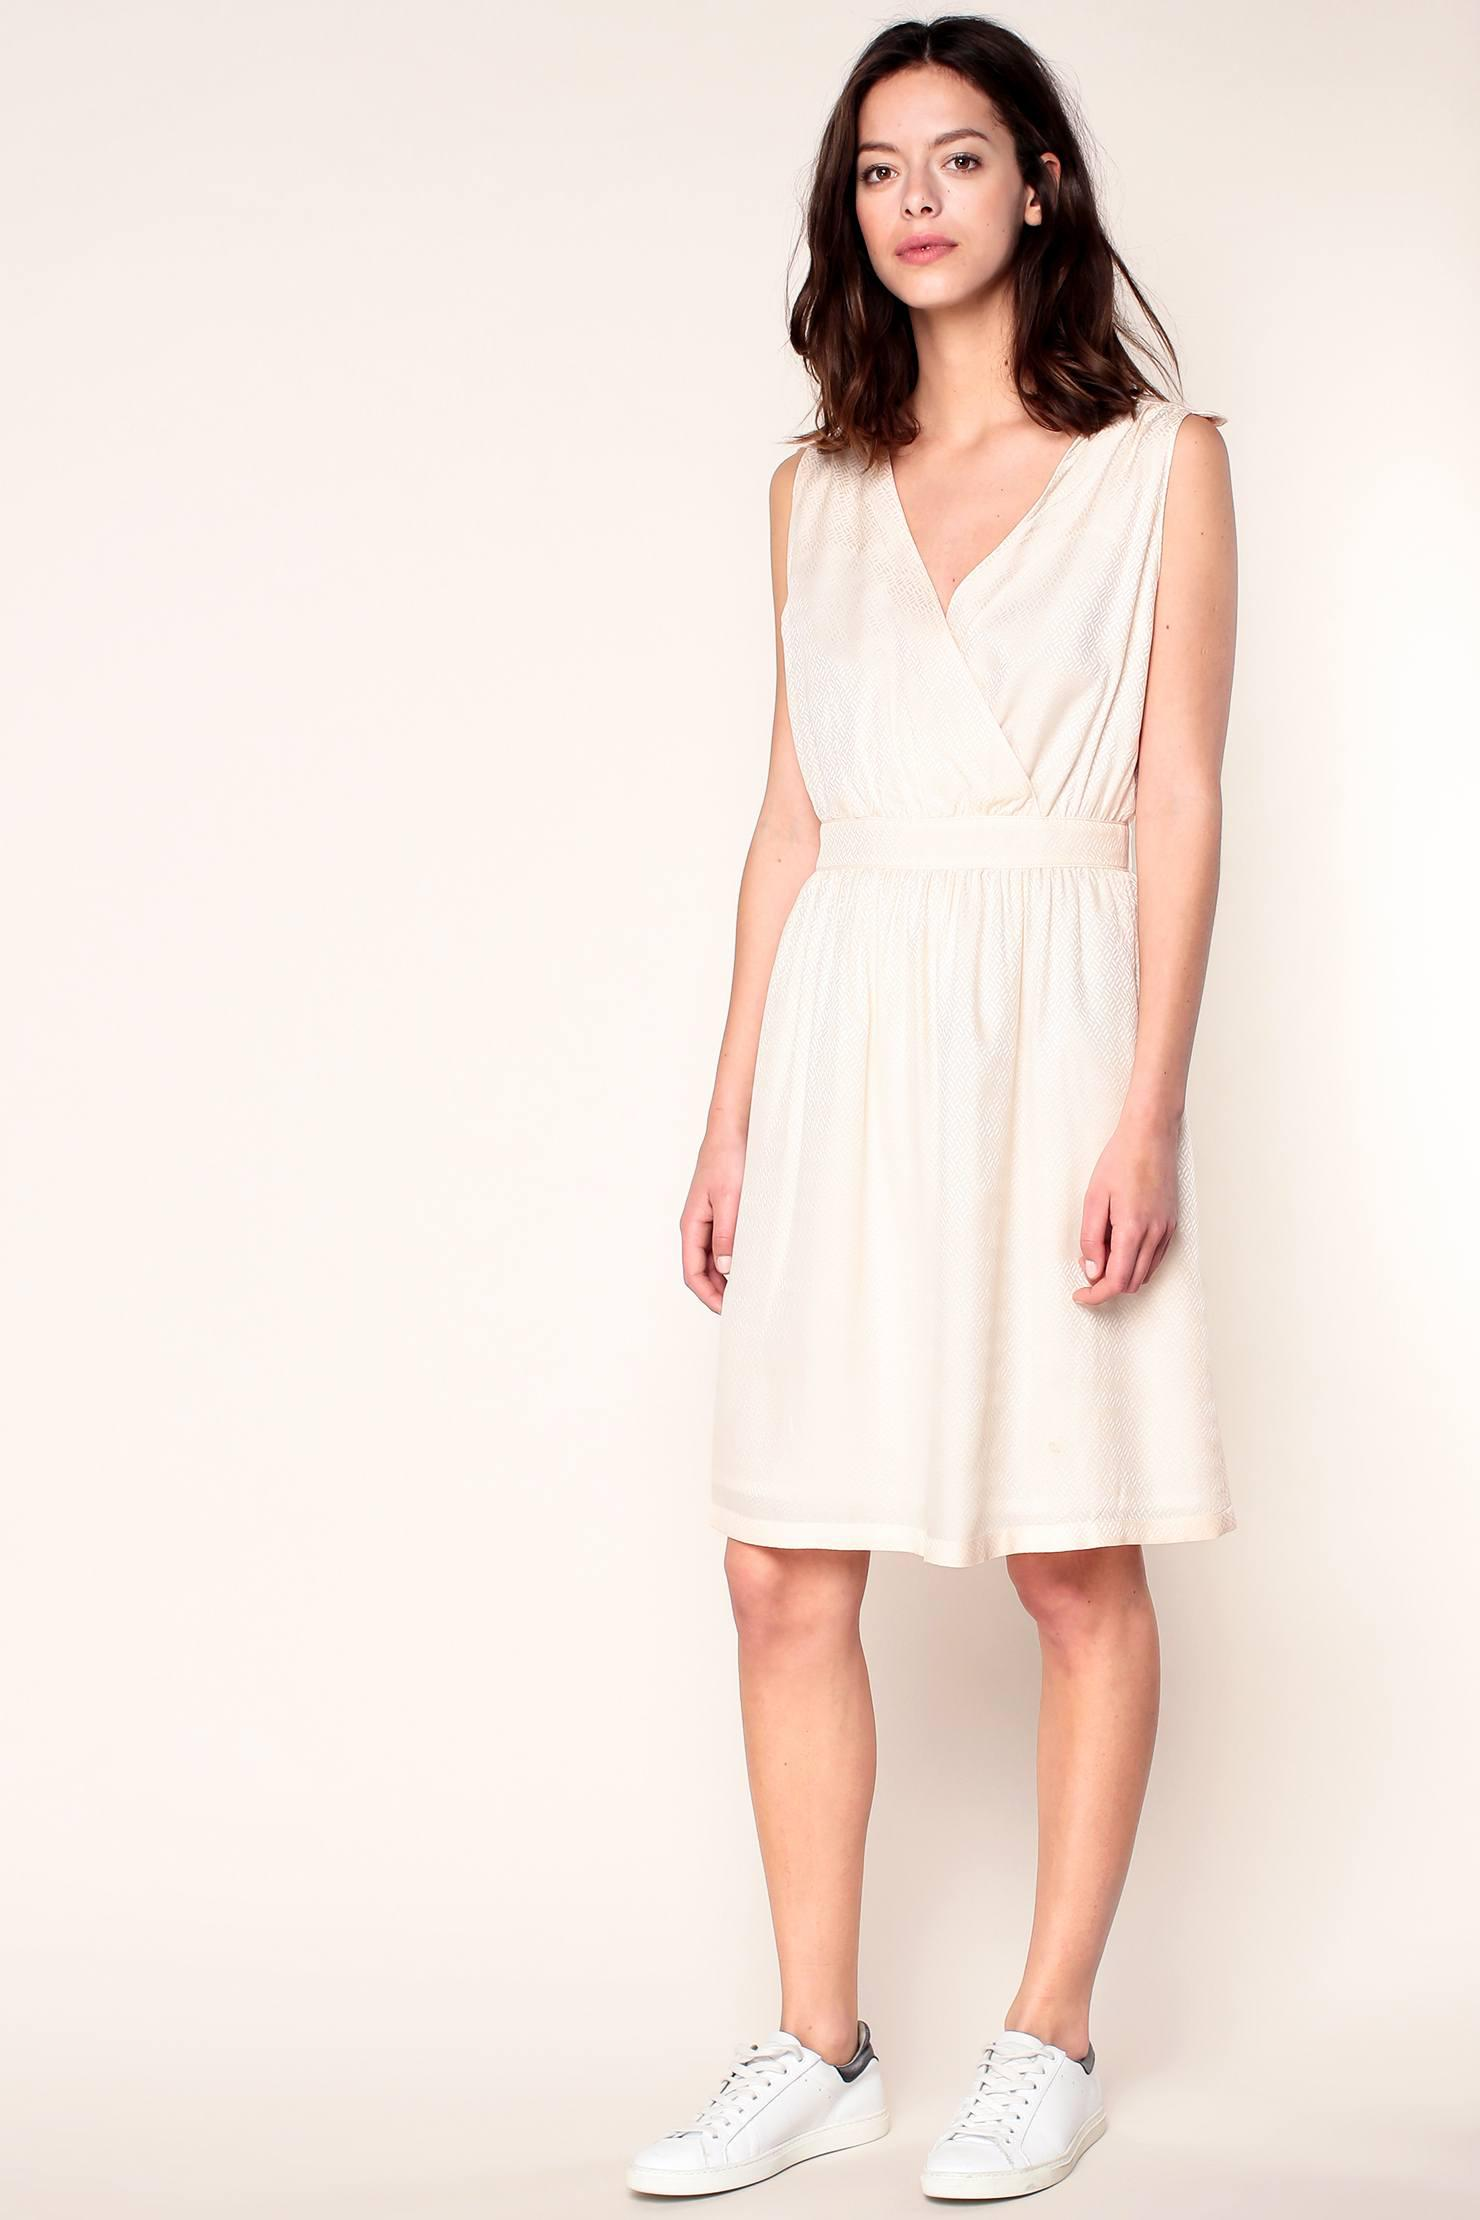 DRESSES - Short dresses French Trotters hoK0IzA